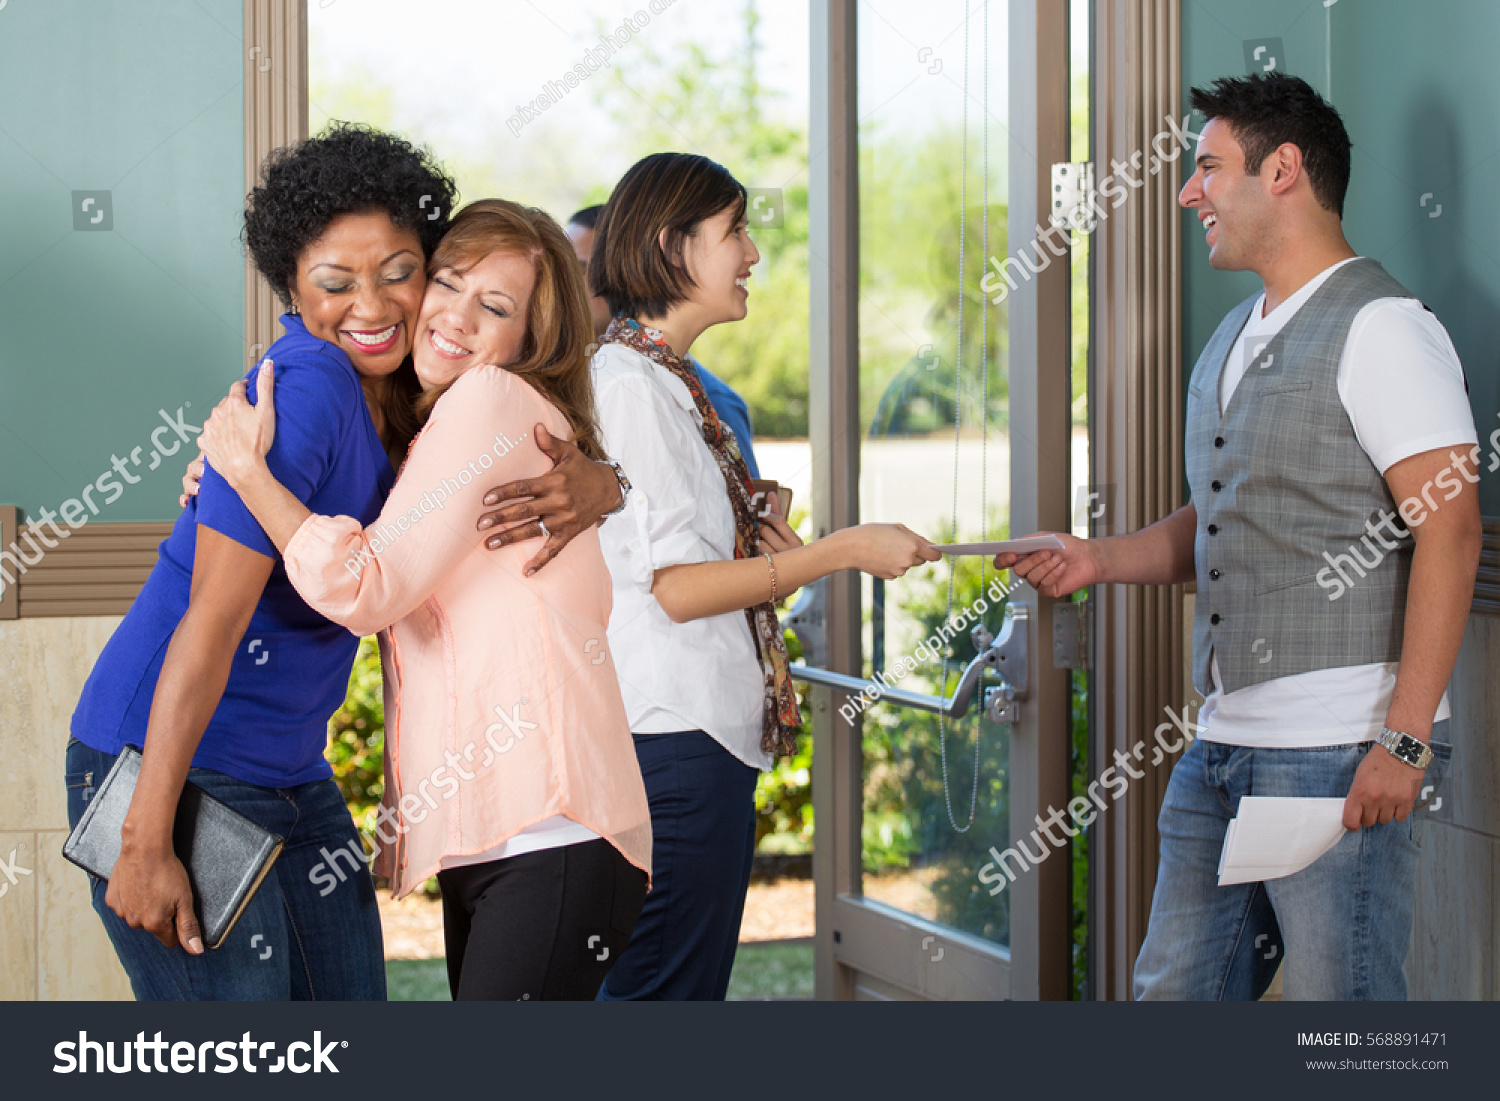 Friendly People Greeting Each Other Stock Photo Edit Now 568891471